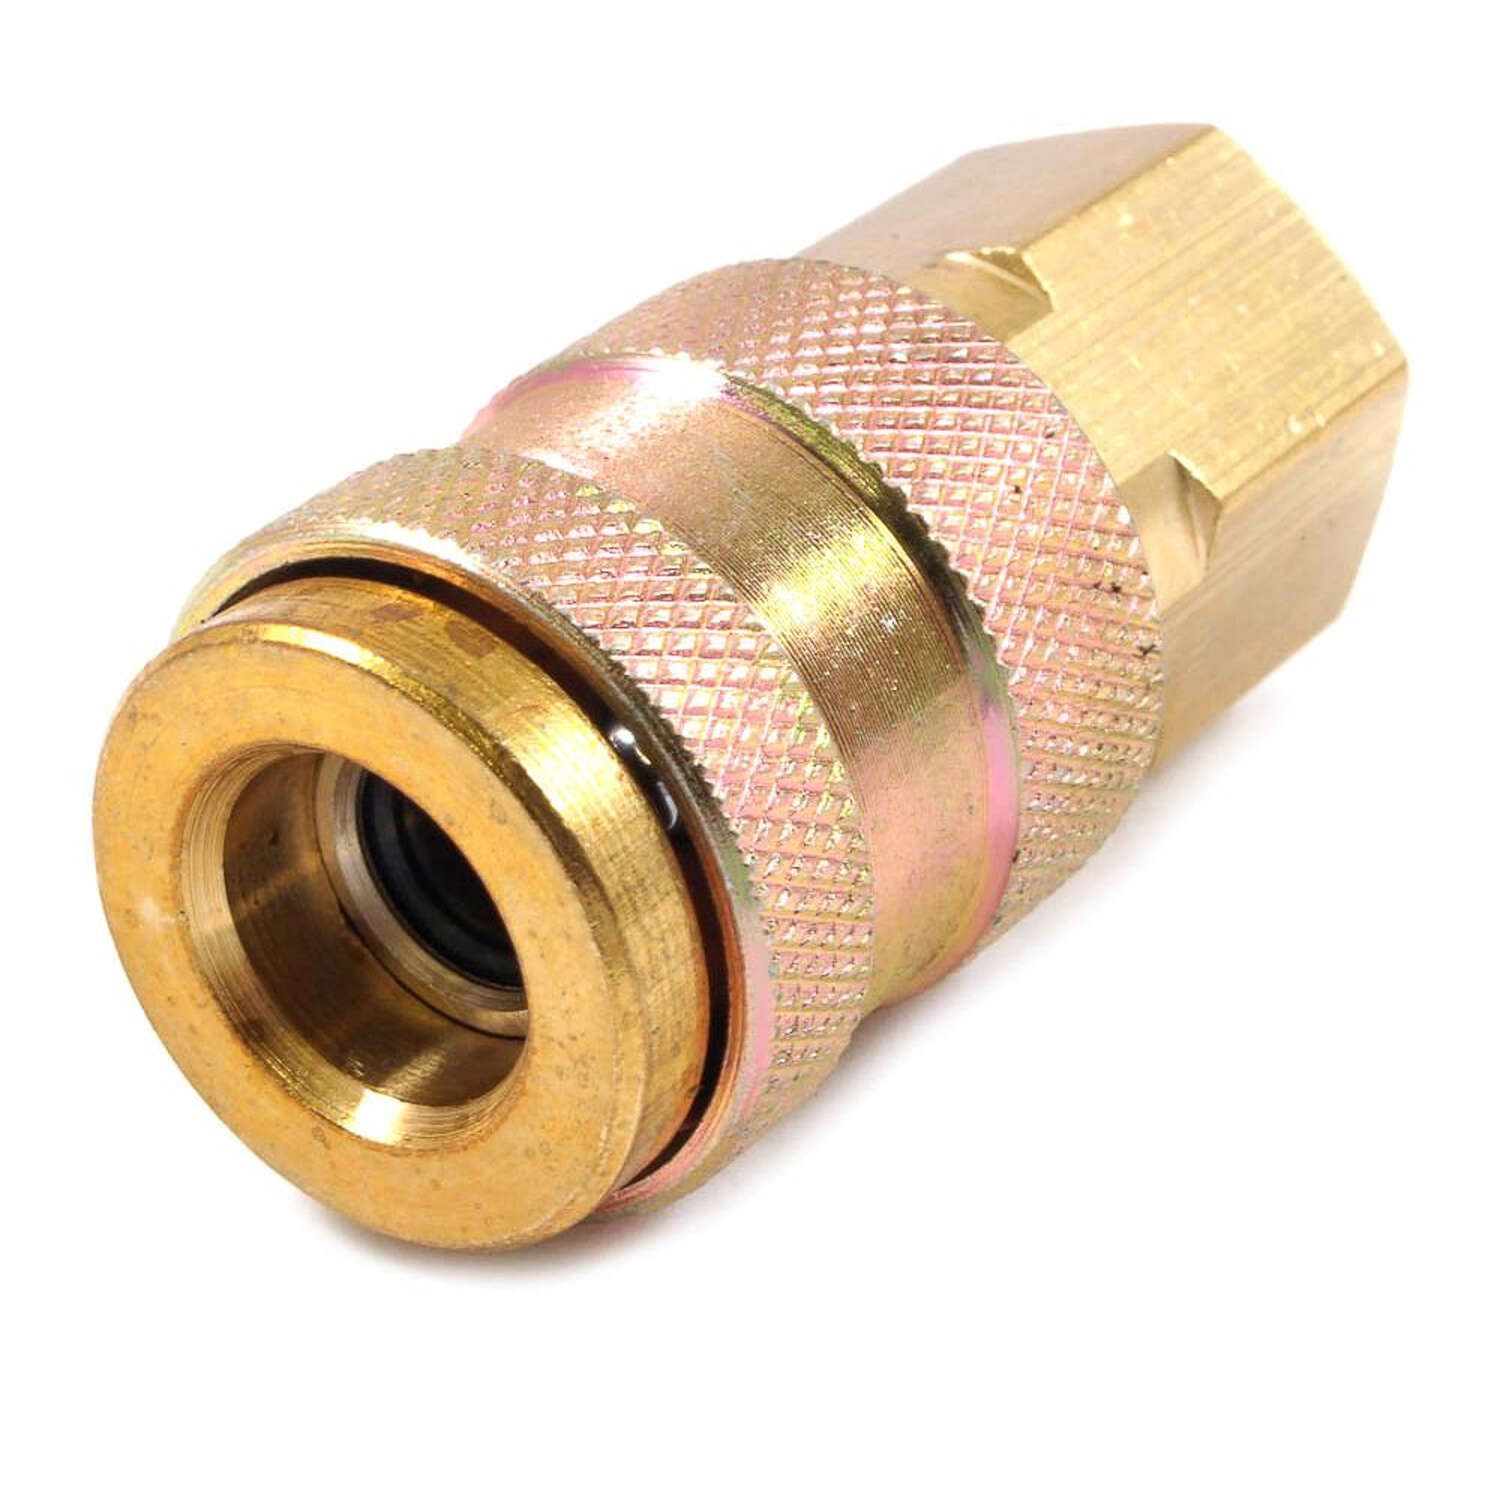 Forney Brass Universal Coupler 1/4 in. Female NPT 1/4 in. Female NPT 1 pc.